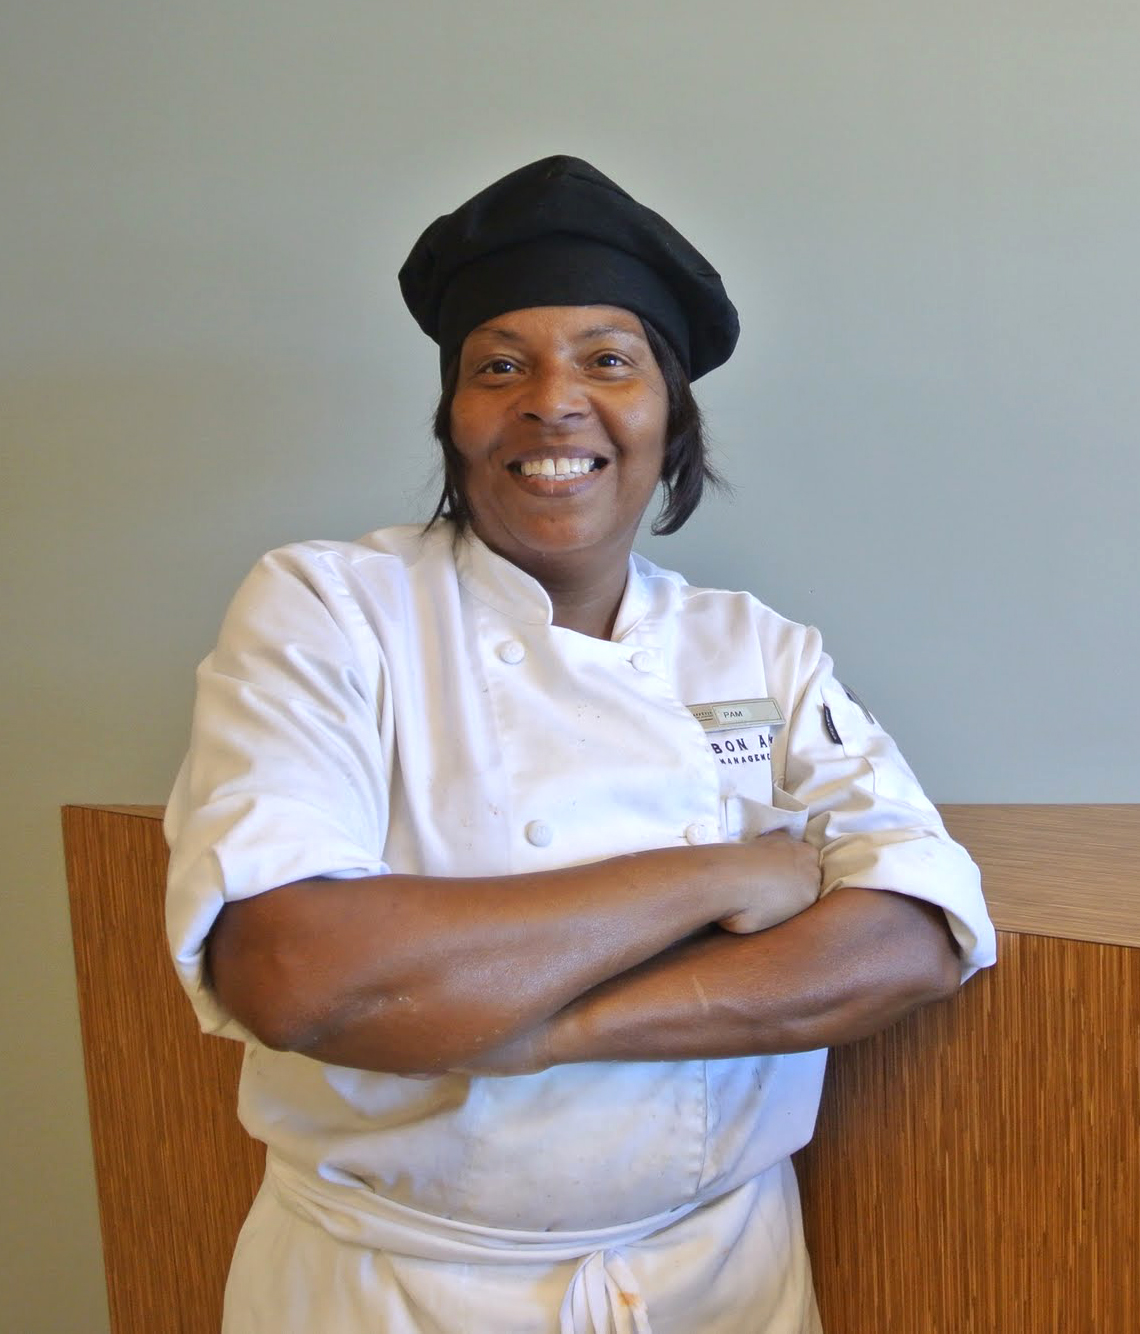 Pam Flowers, Deli Cook at Savannah College of Art and Design